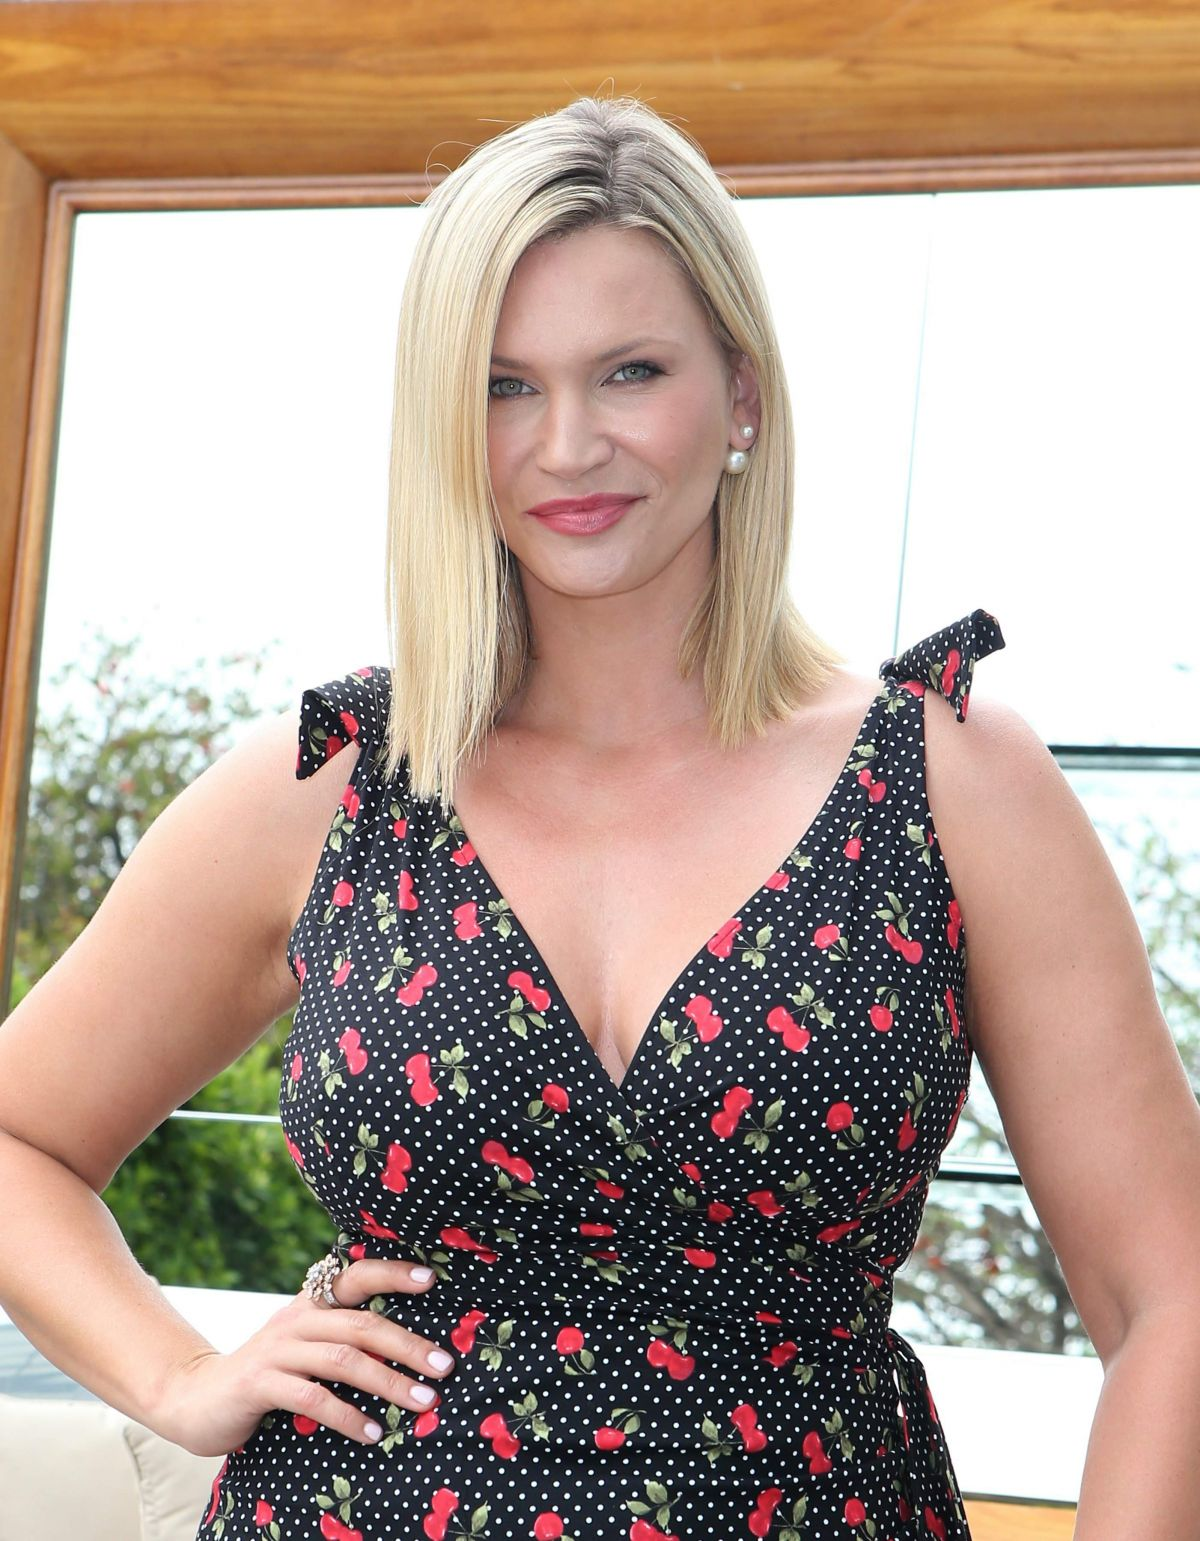 Natasha Henstridge At 2015 Golden Maple Awards - Celebzz ...